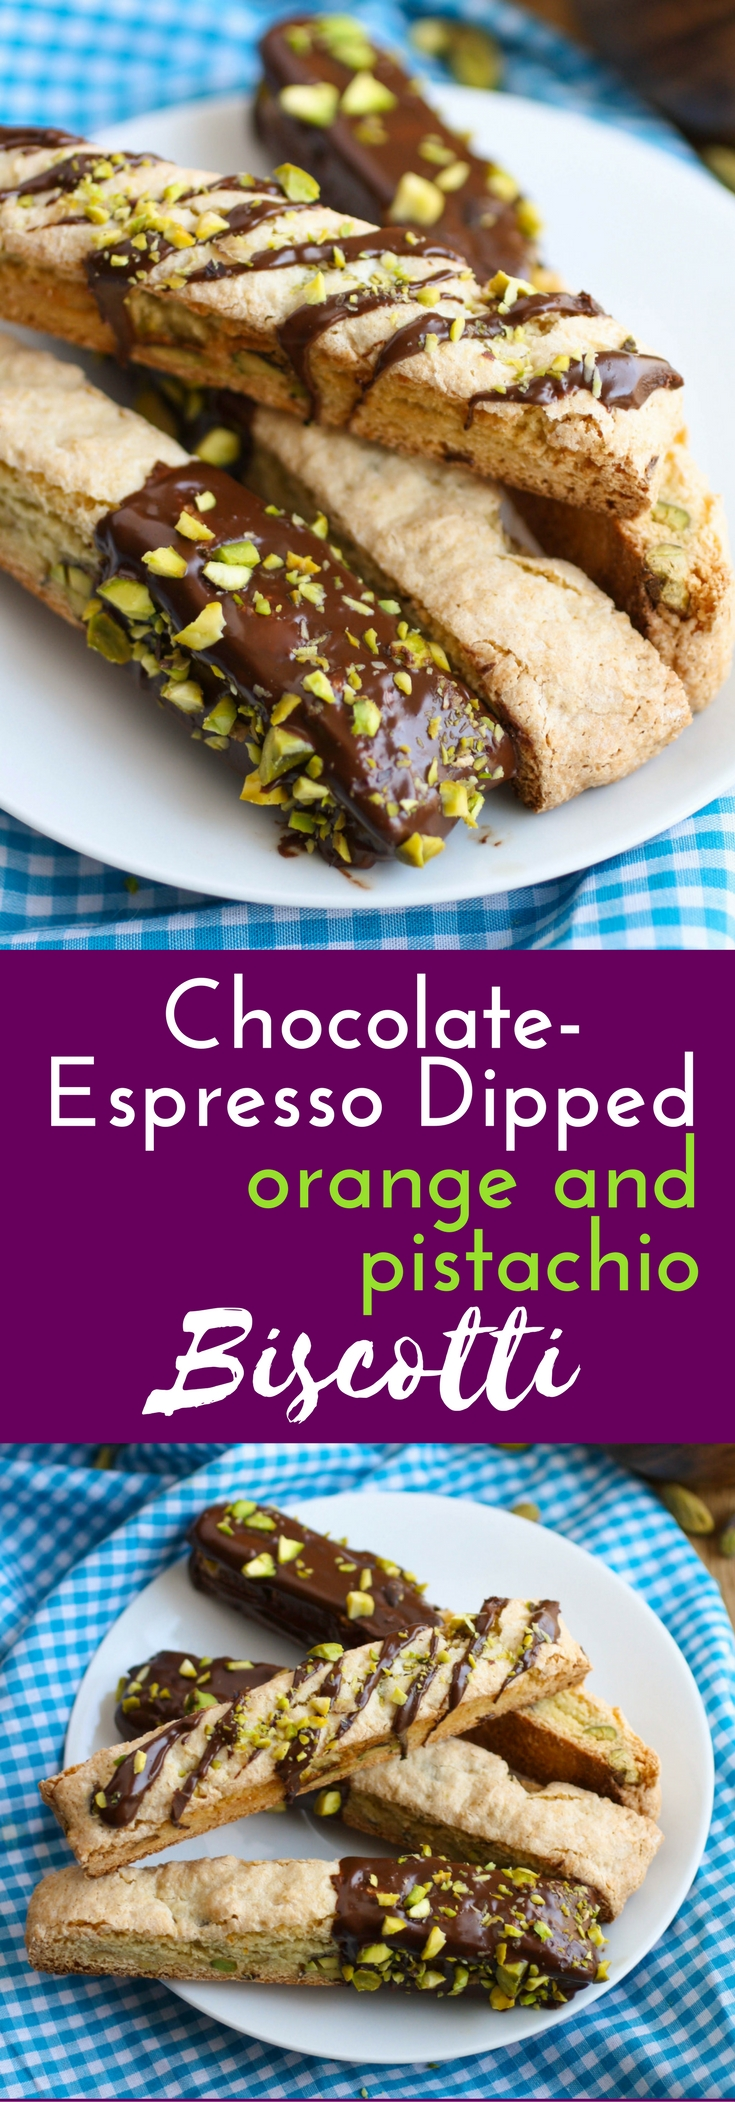 Chocolate-Espresso Dipped Orange and Pistachio Biscotti cookies are a treat. These cookies include fabulous flavors and are good to enjoy anytime!